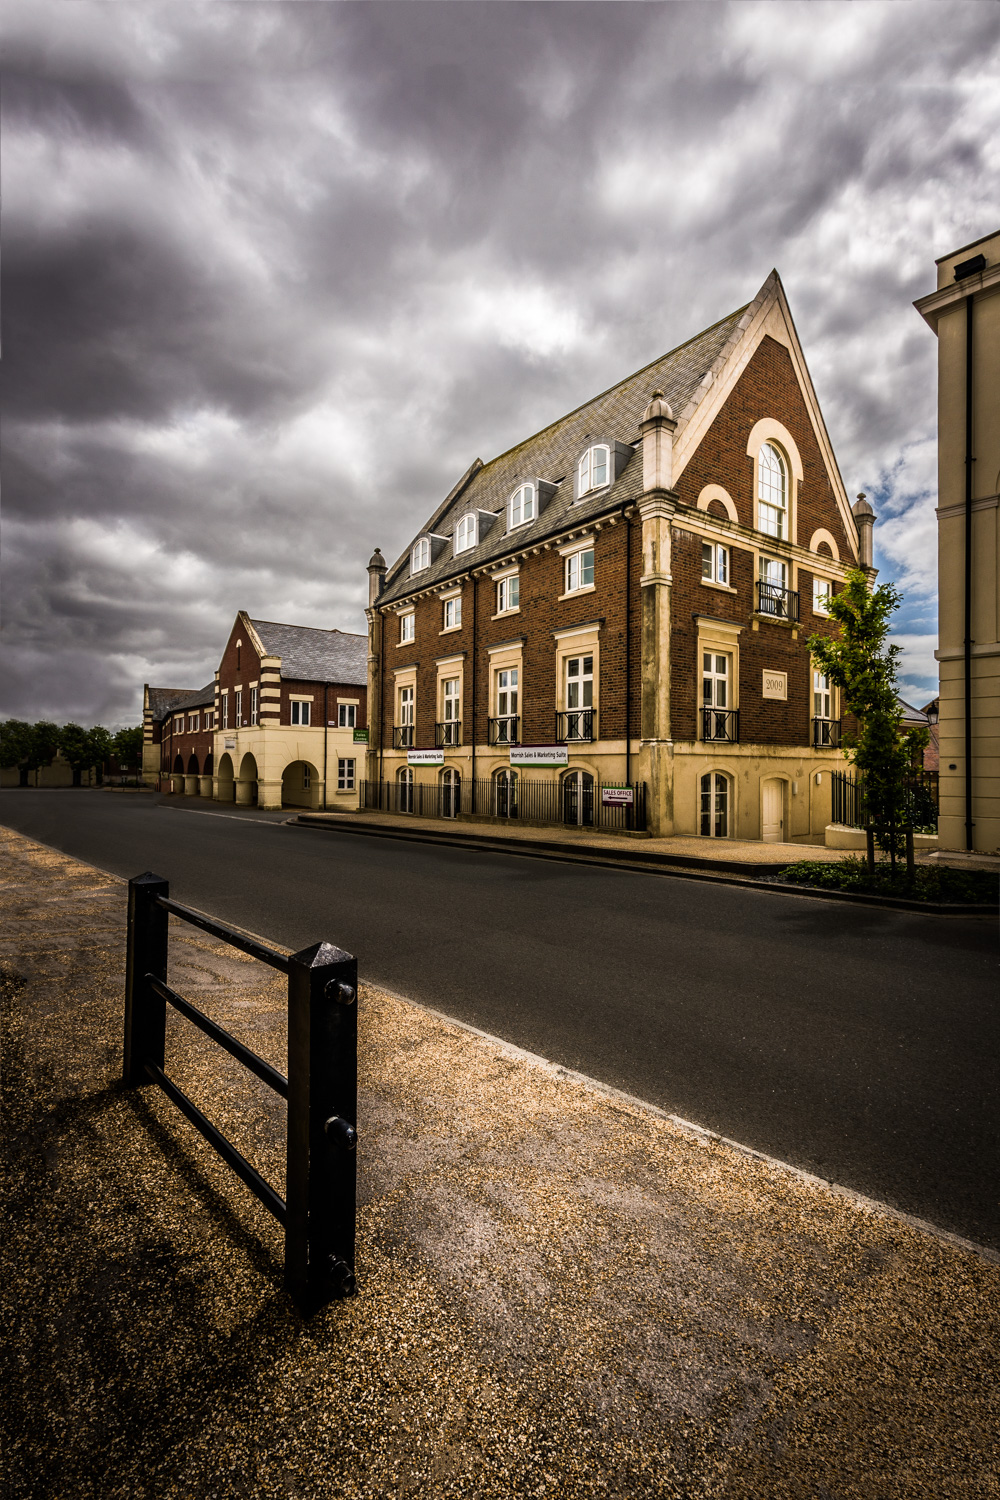 Photo of Poundbury Architecture by Rick McEvoy ABIPP